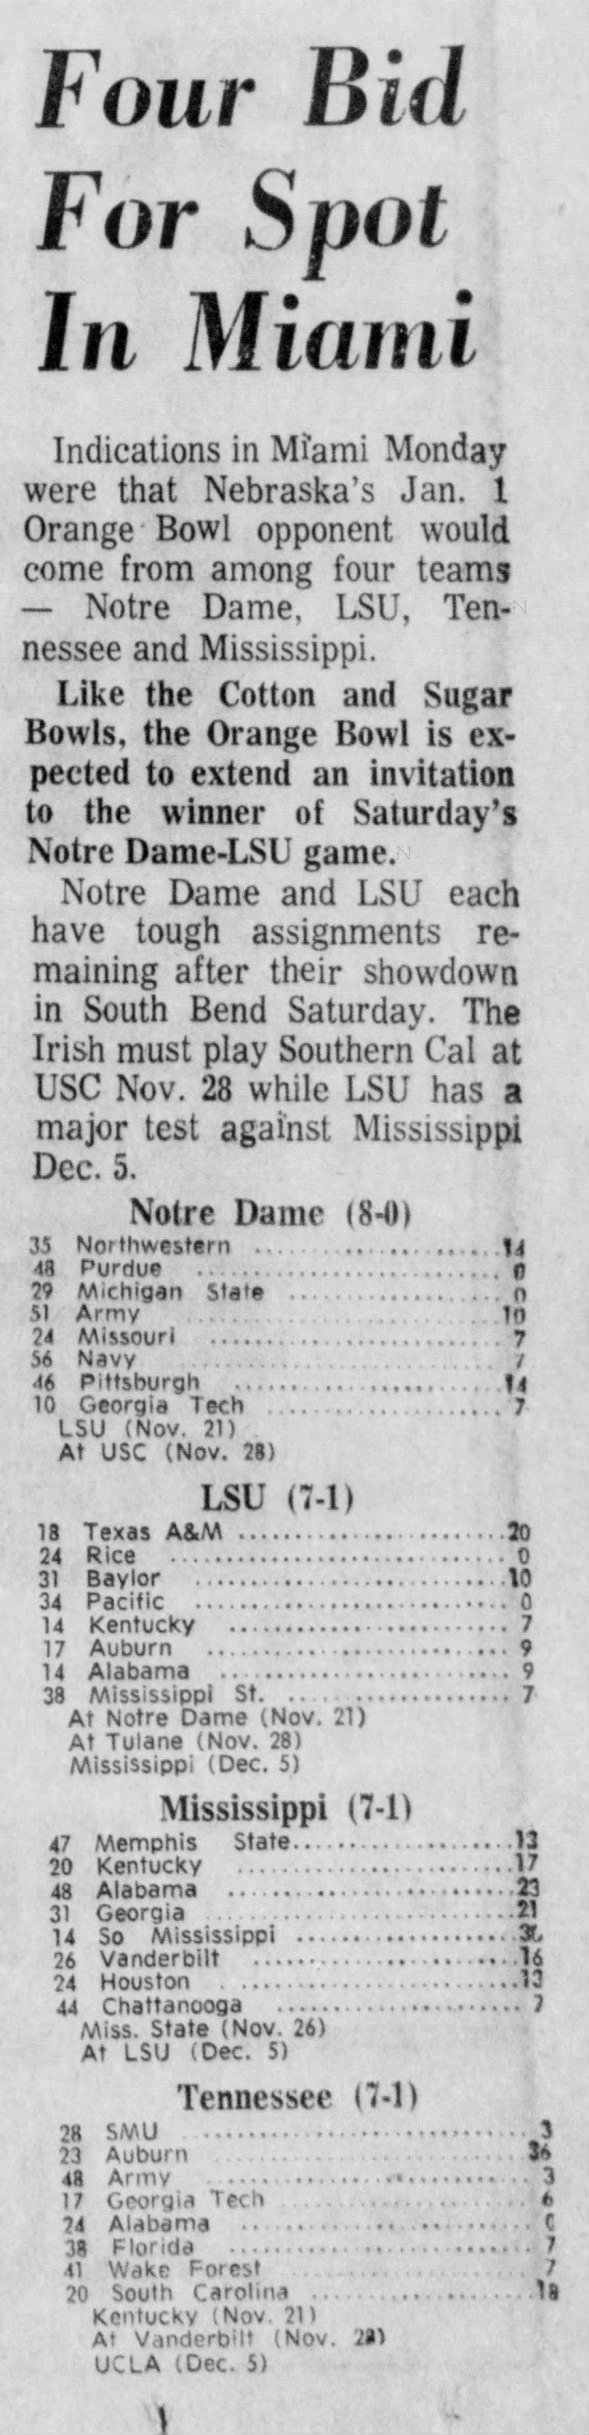 1970.11.16 Possible bowl opponents